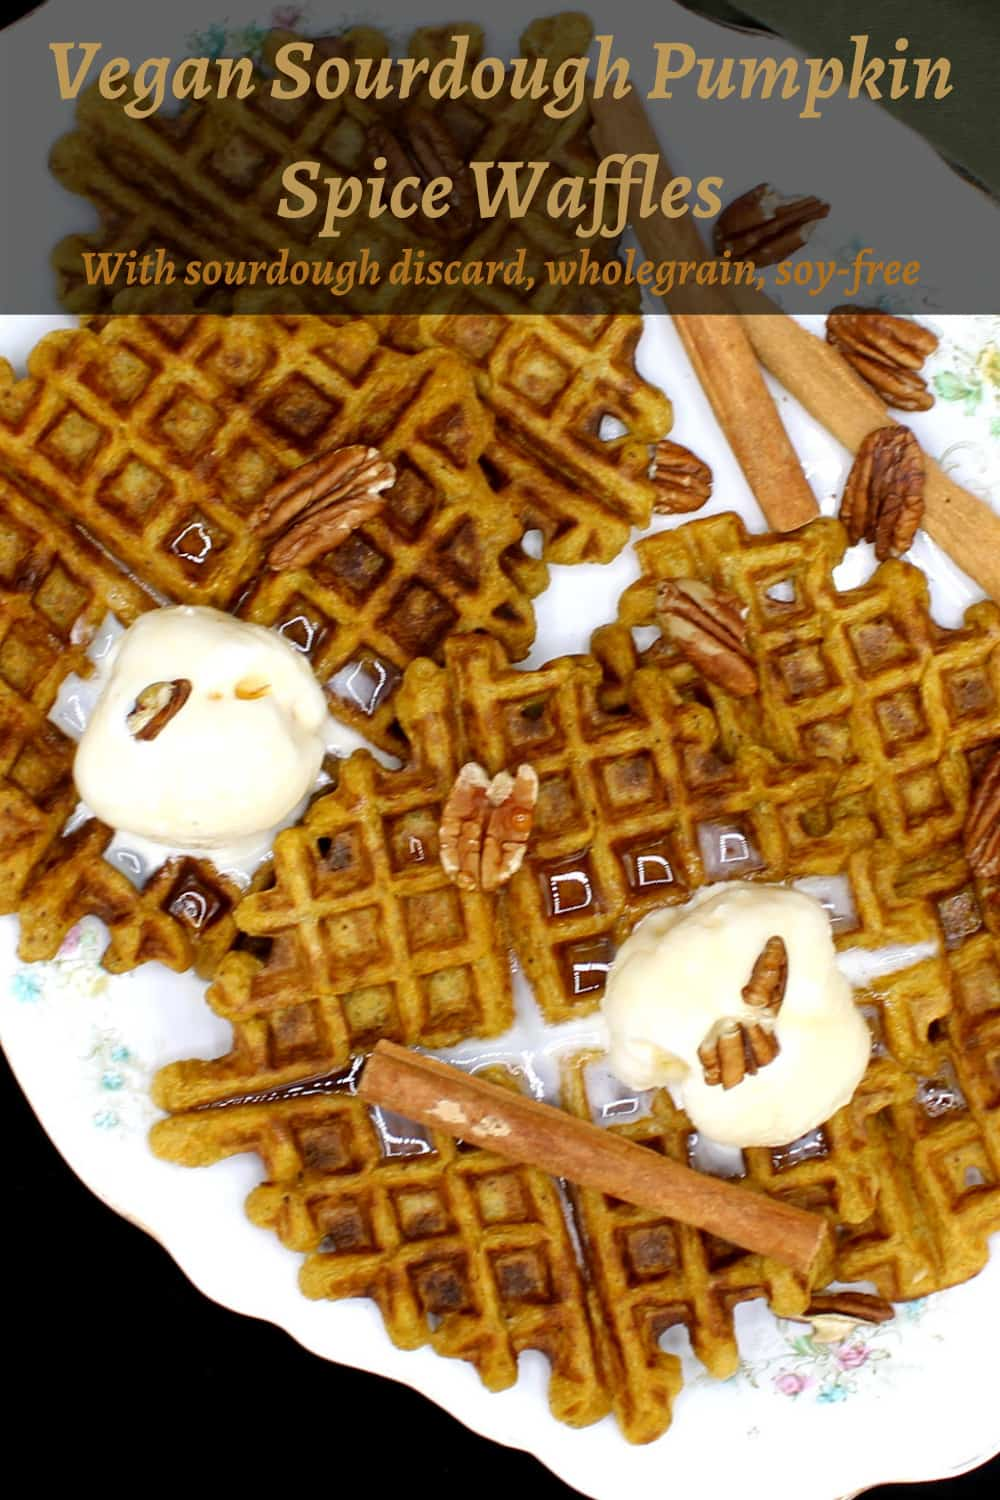 Vegan Sourdough Pumpkin Spice Waffles on a white serving dish with a flower pattern. On top of the waffles is vanilla ice cream and sticks of cinnamon and pecans are scattered around.